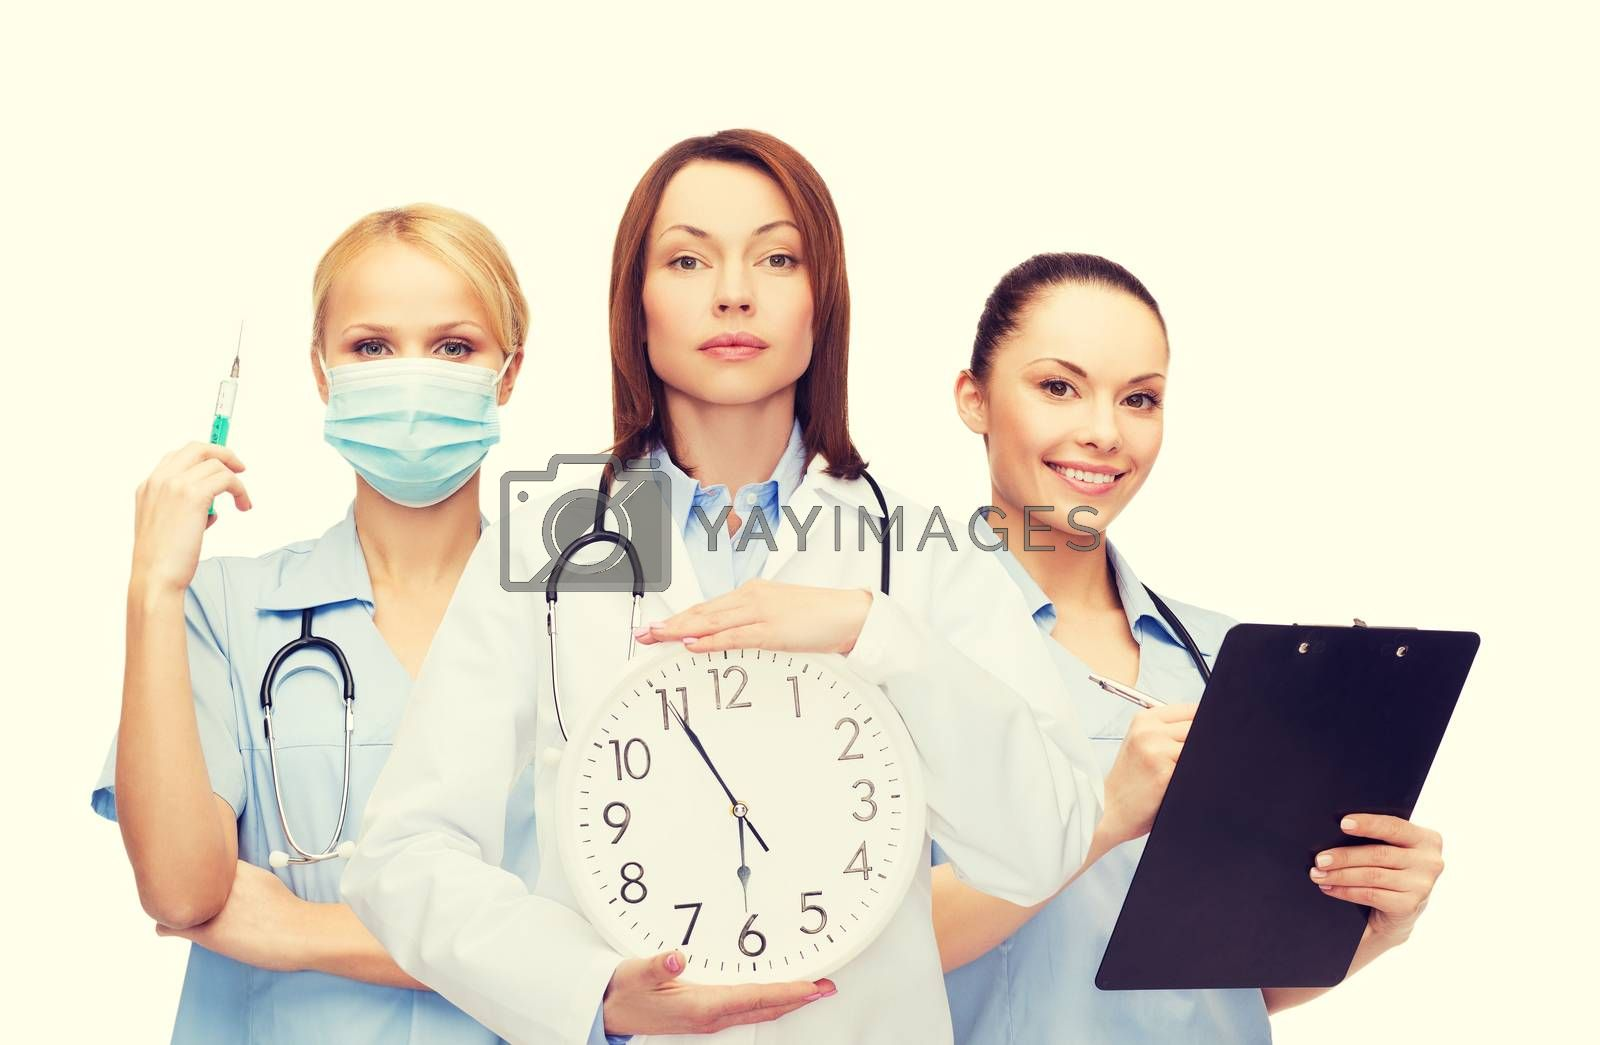 healthcare and medicine concept - calm female doctor and nurses with wall clock and stethoscope